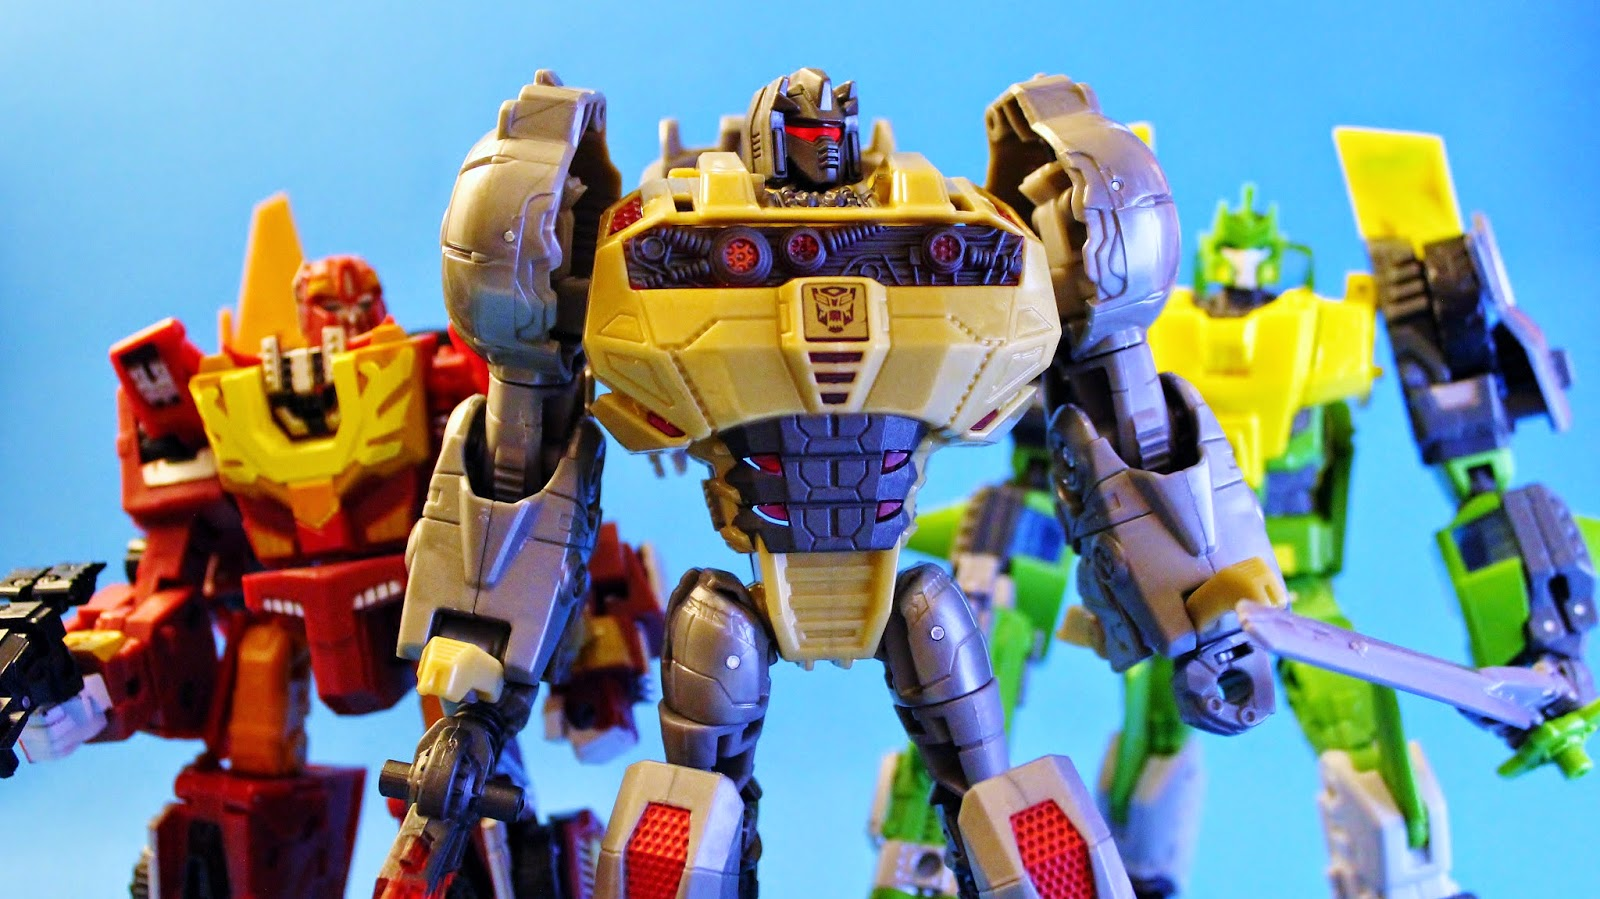 Transformers - The Movie 1986 Toy Collection Classics Universe Generations Rodimus Grimlock Springer Prime